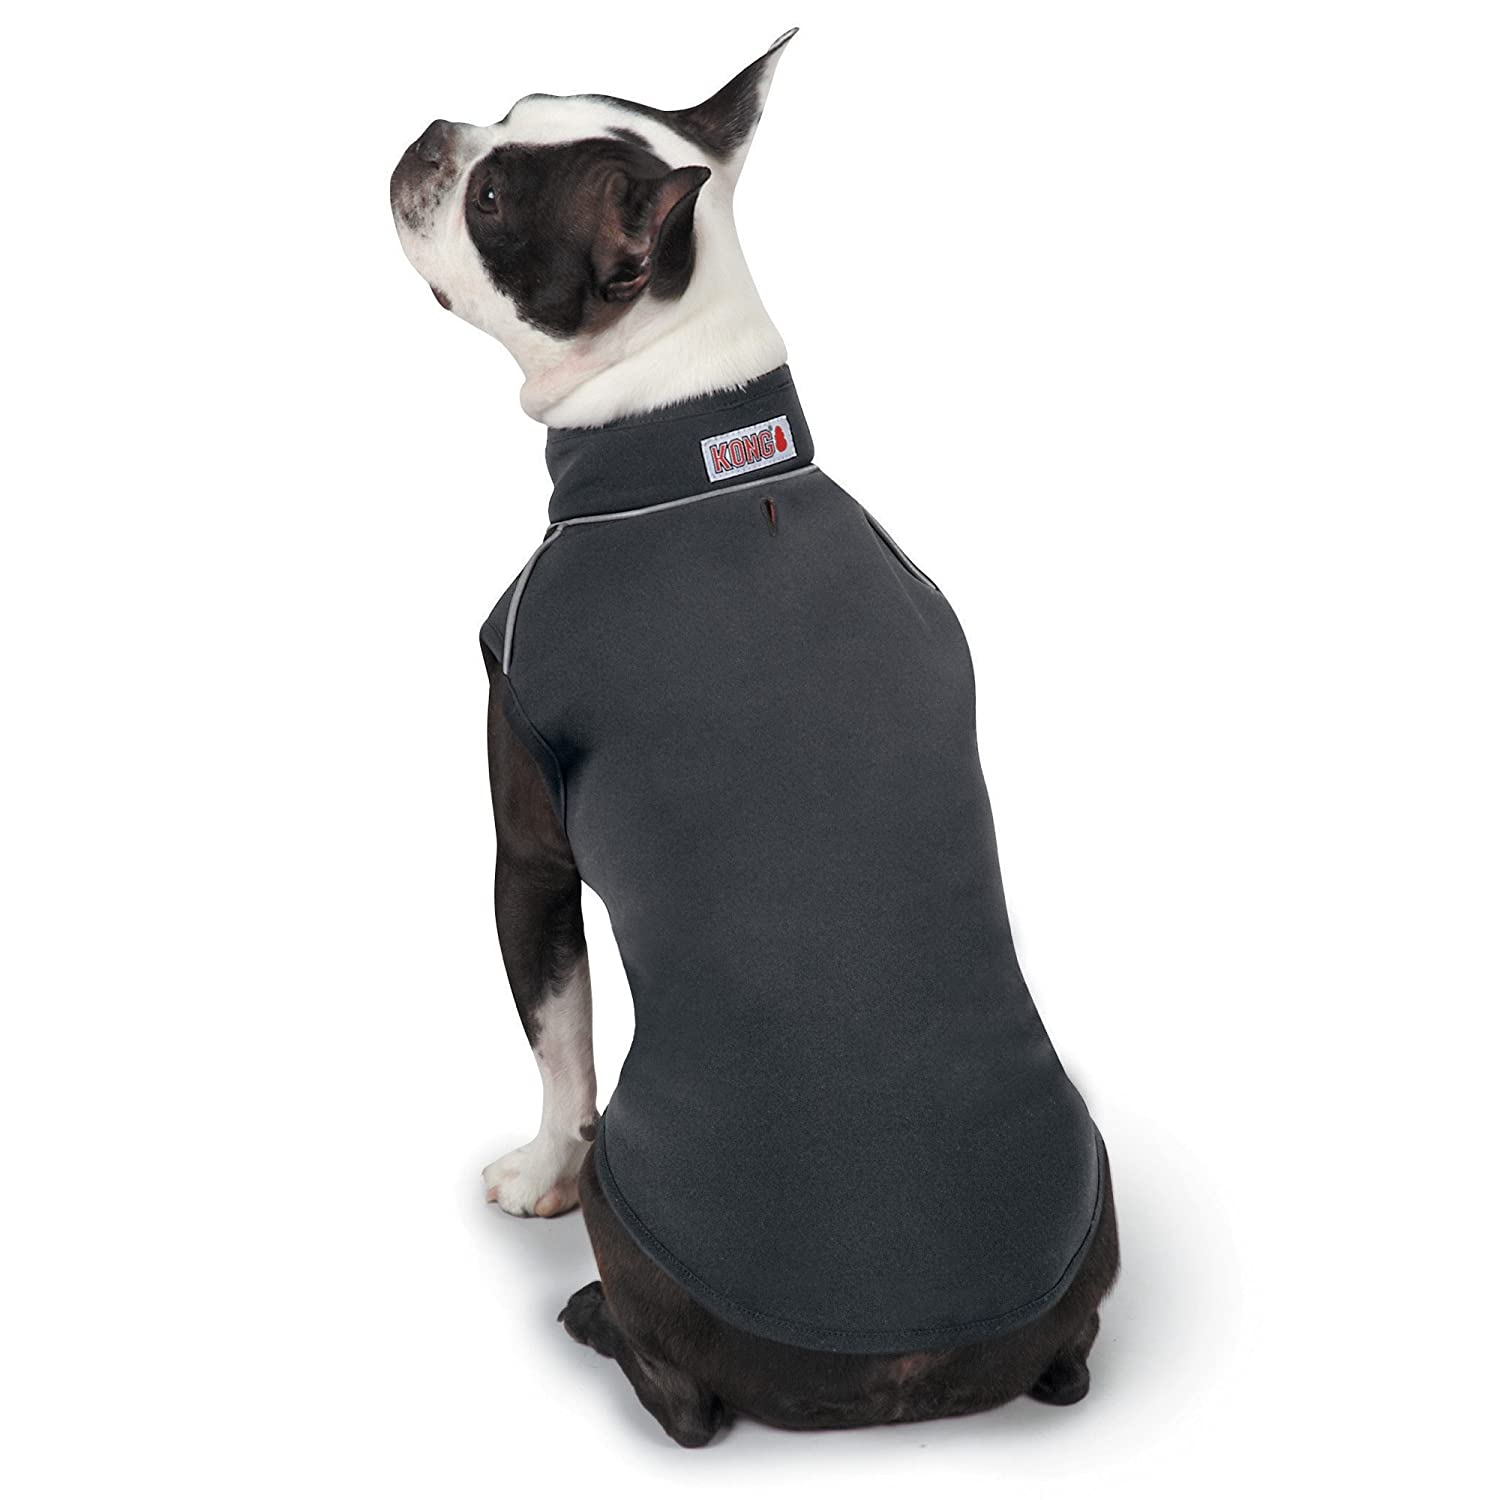 Amazon.com : KONG Reversible Microfleece Vest for Dogs, 20